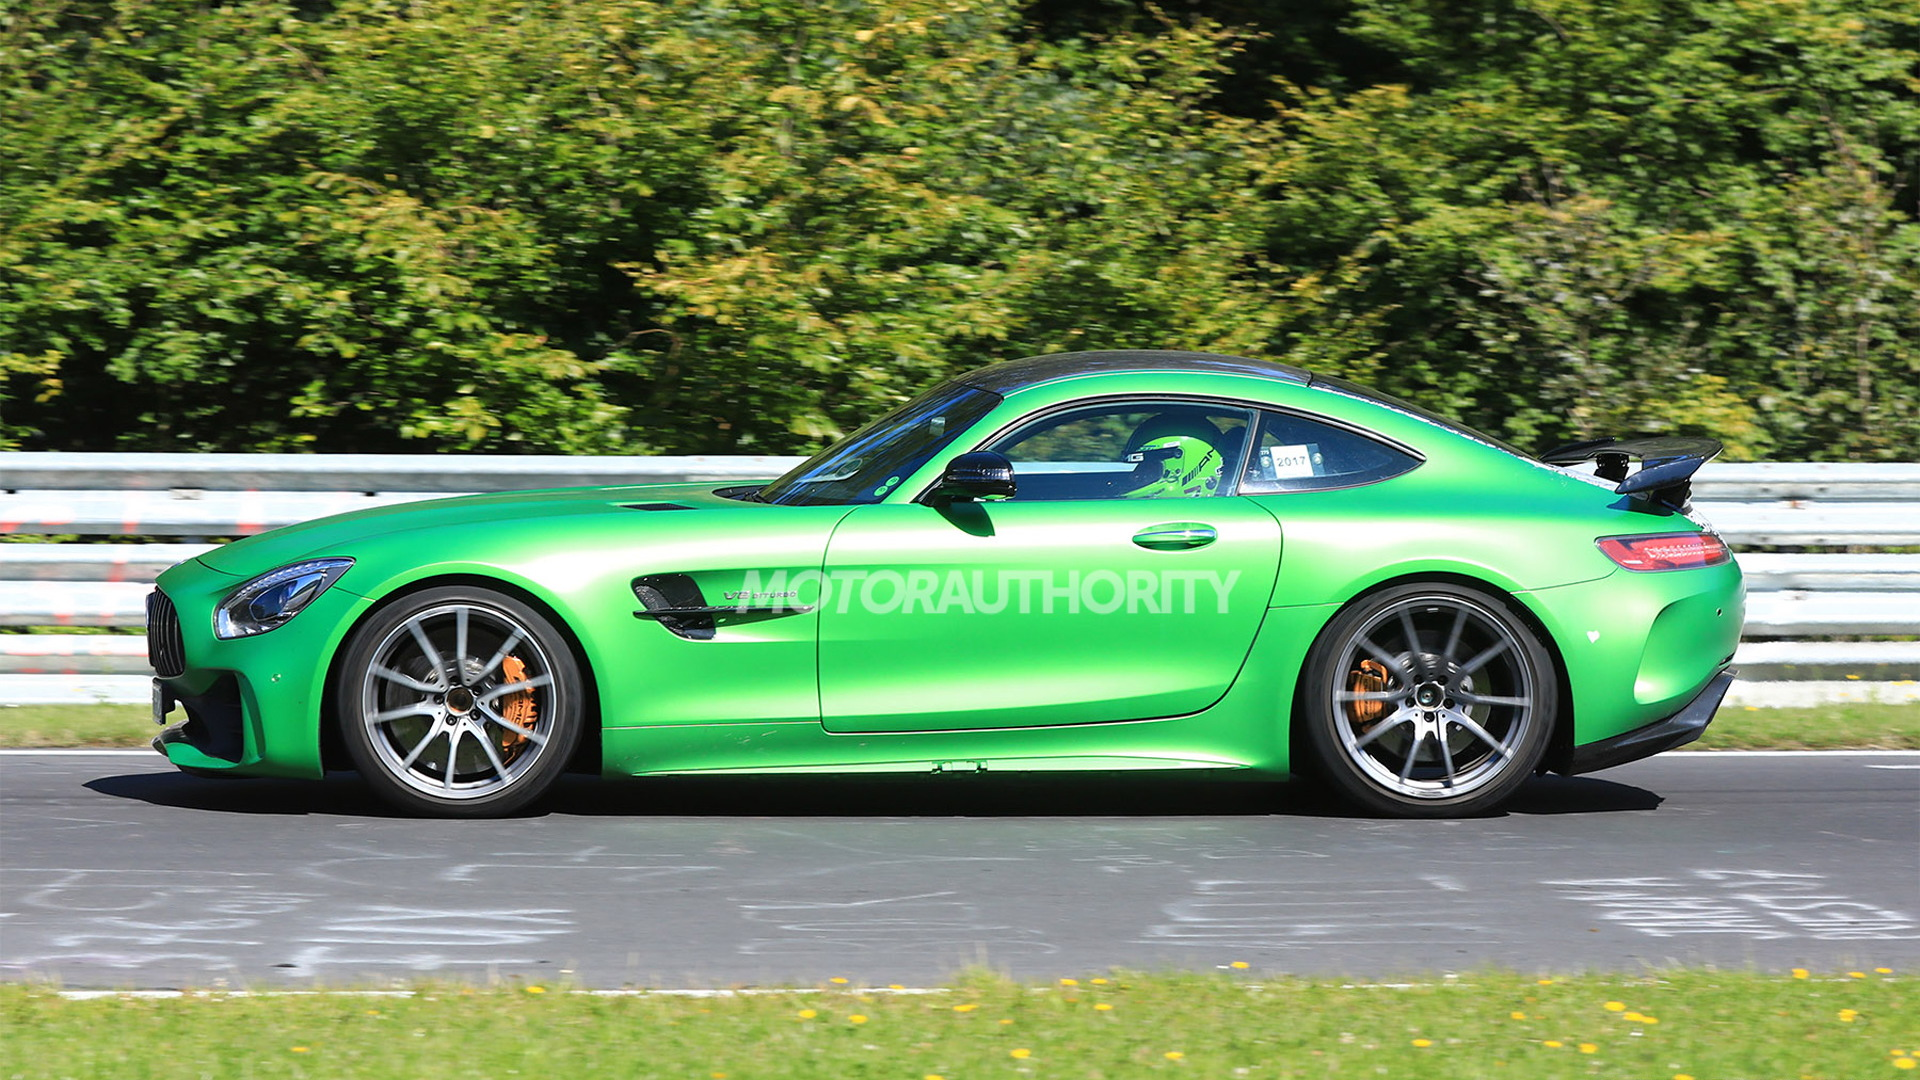 2021 Mercedes-AMG GT Black Series test mule spy shots - Image via S. Baldauf/SB-Medien